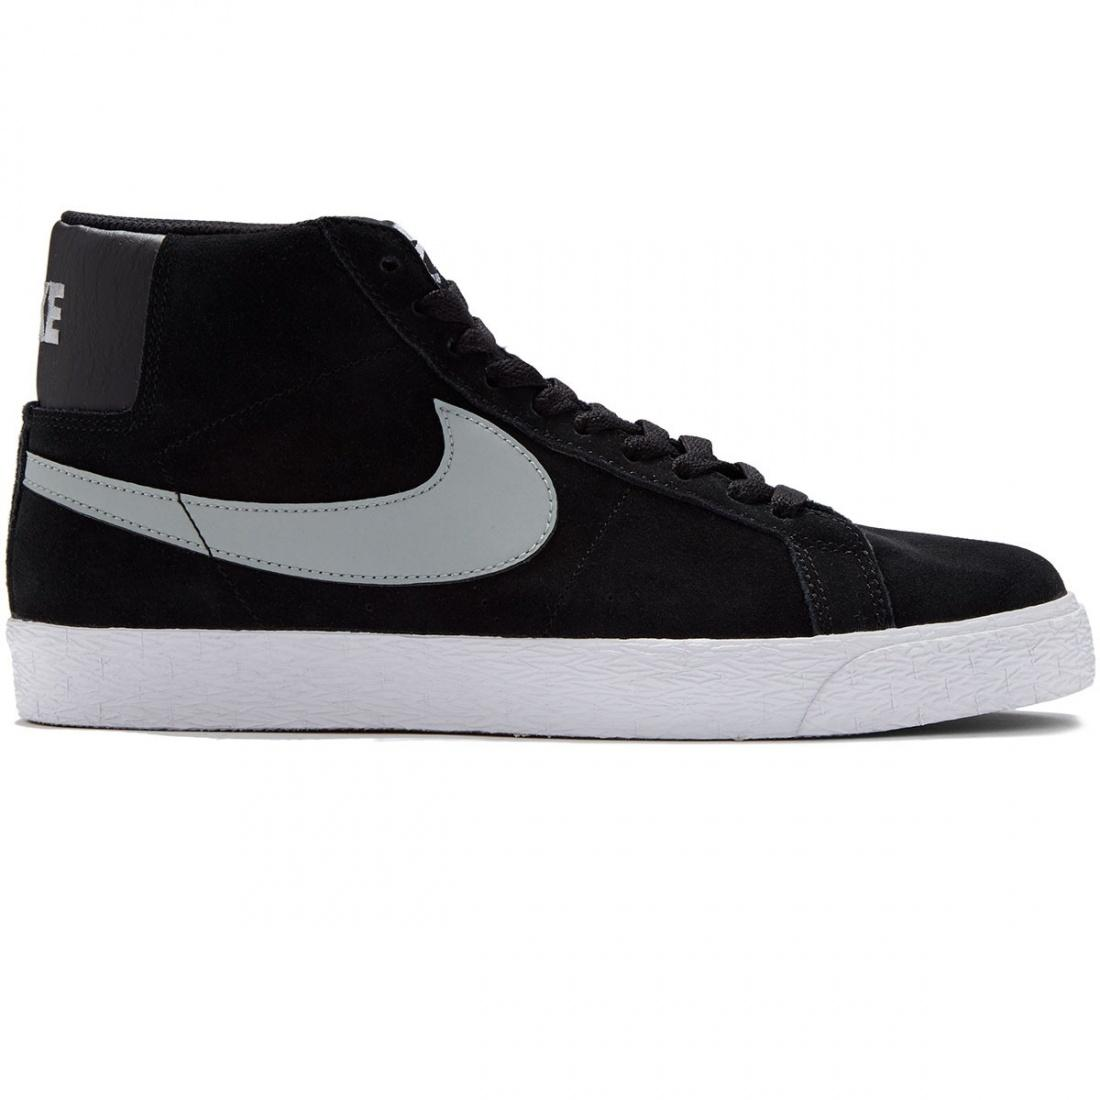 Nike SB Кеды Nike SB Blazer SB Premium Se black-base grey-white US 9.5 nike sb кеды nike sb zoom stefan janoski leather черный антрацитовый черный 12